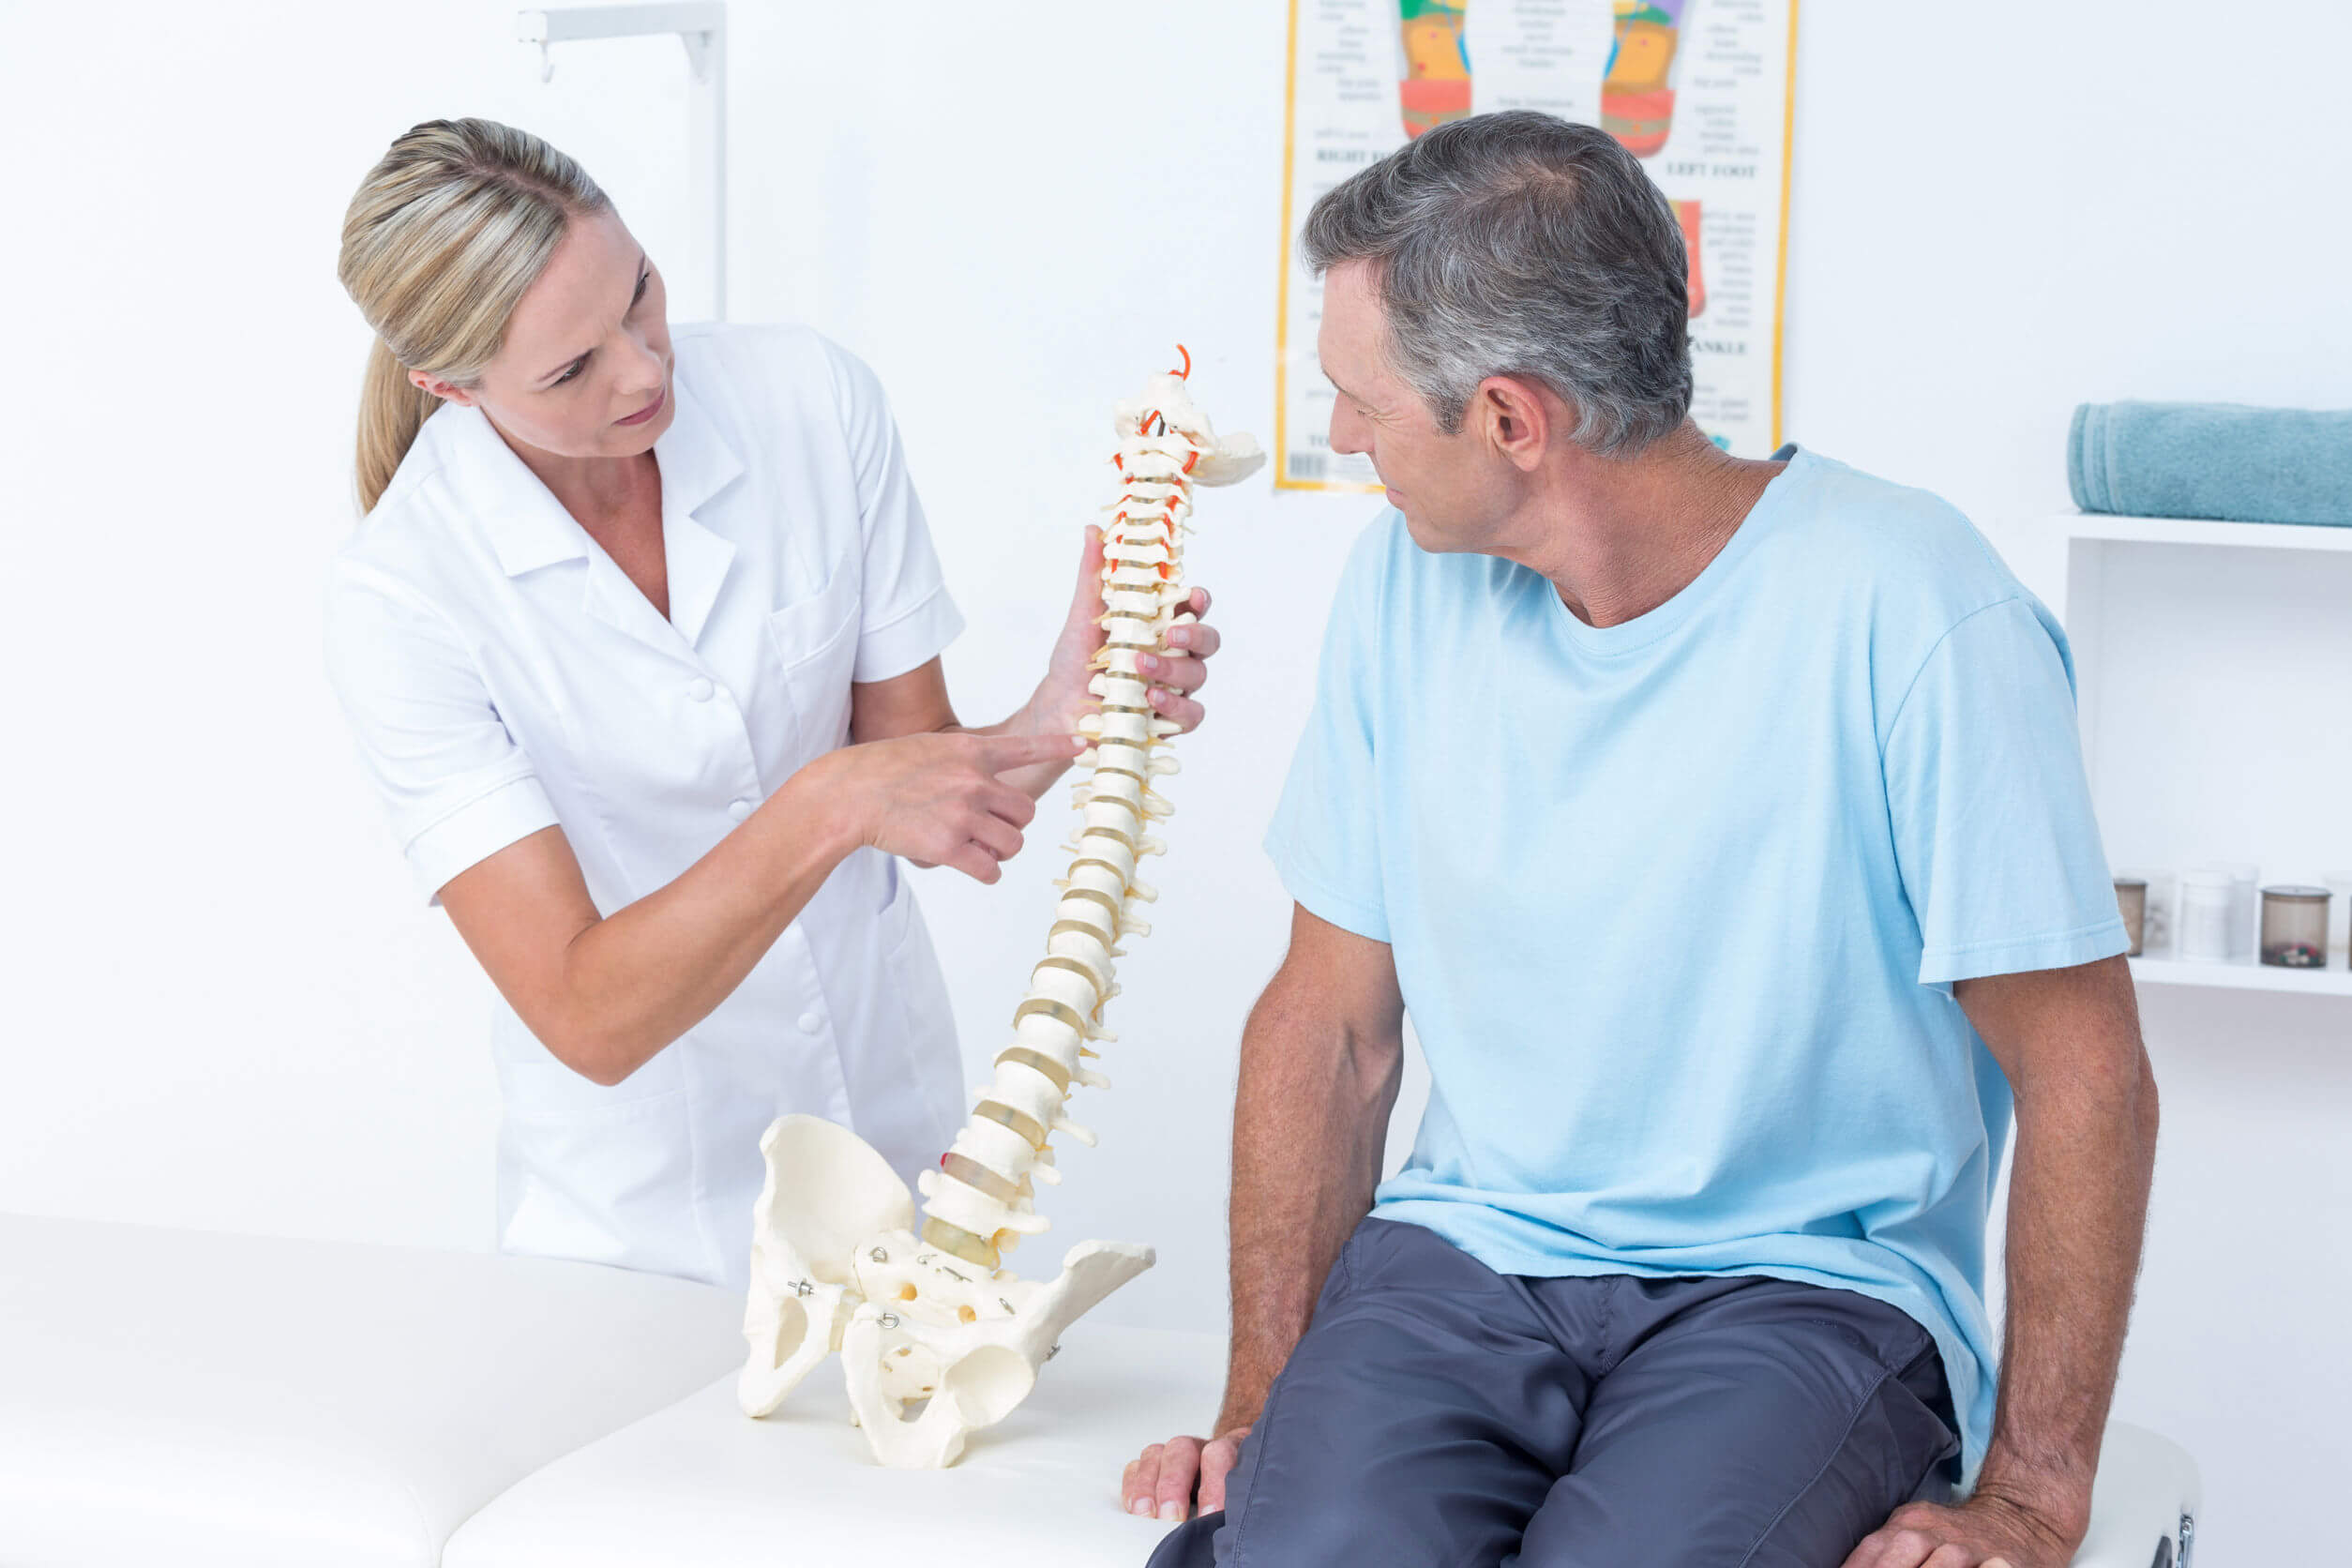 The Just Few Common Myths & Misconceptions About Chiropractic Update 2019 in Australia